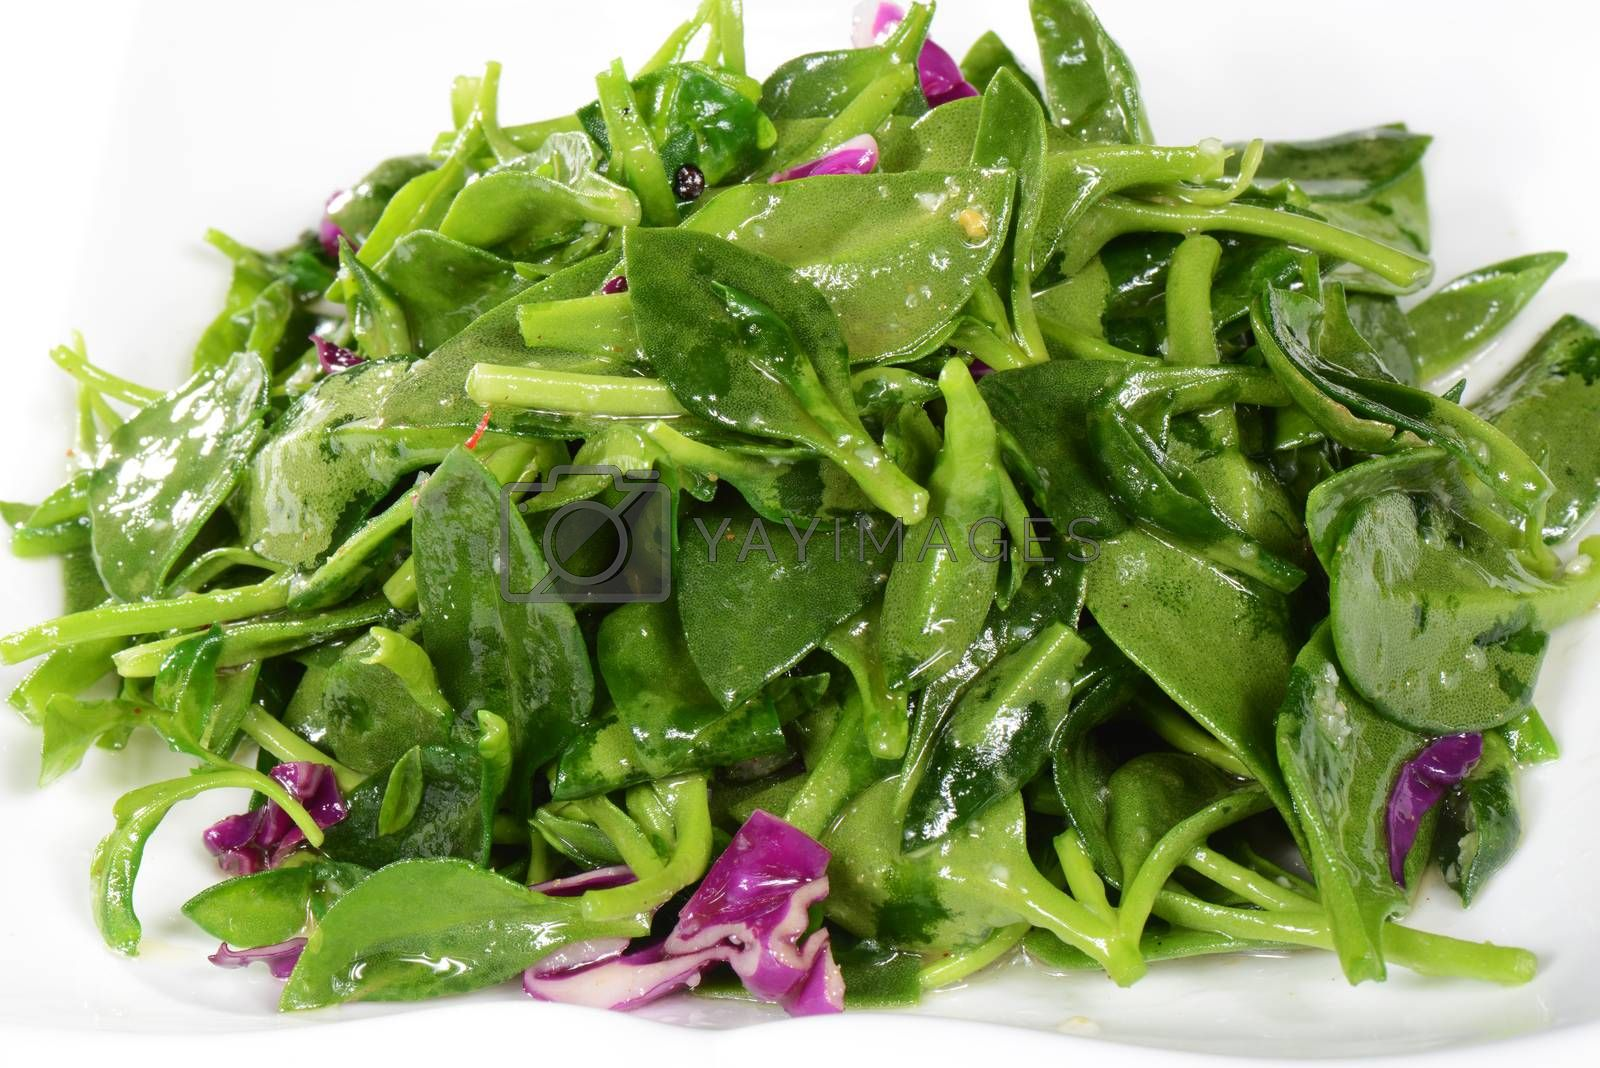 Royalty free image of Chinese Food: Fried wild vegetables by bbbar